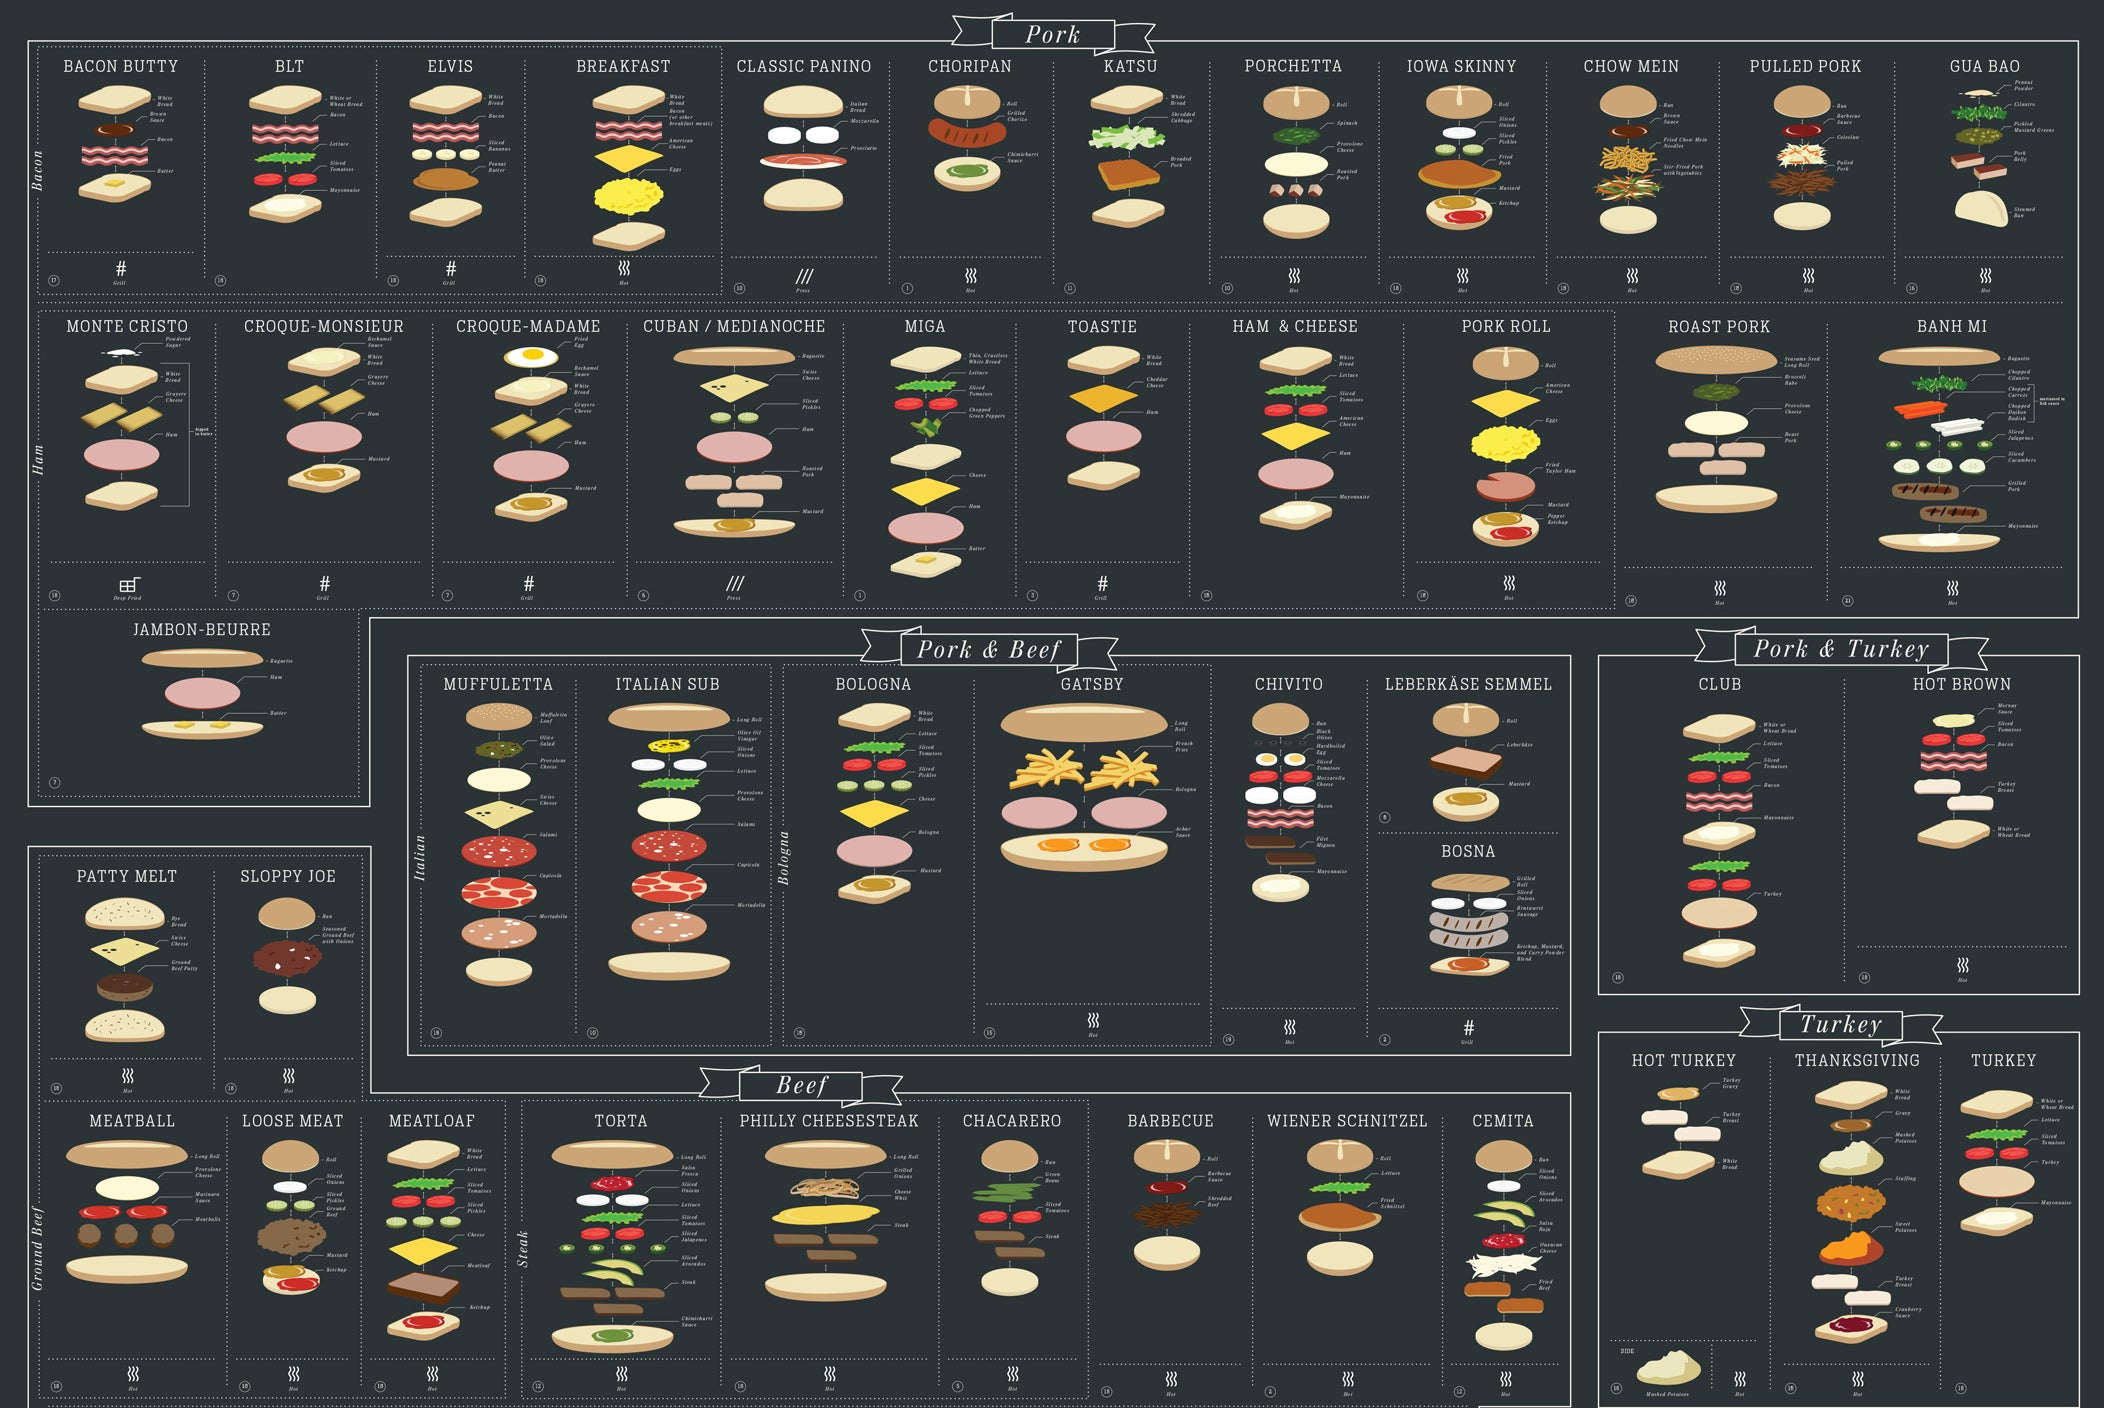 Sandwiches Deconstructed In A Neat Chart